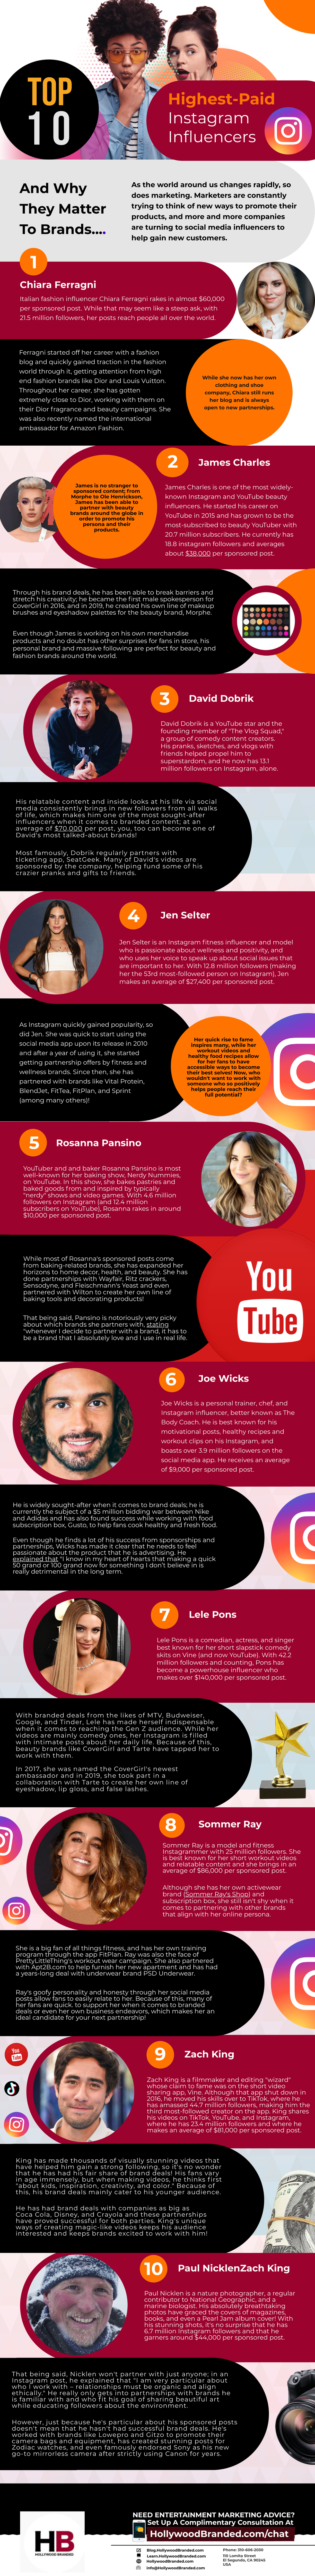 top 10 highest paid influencers infographic